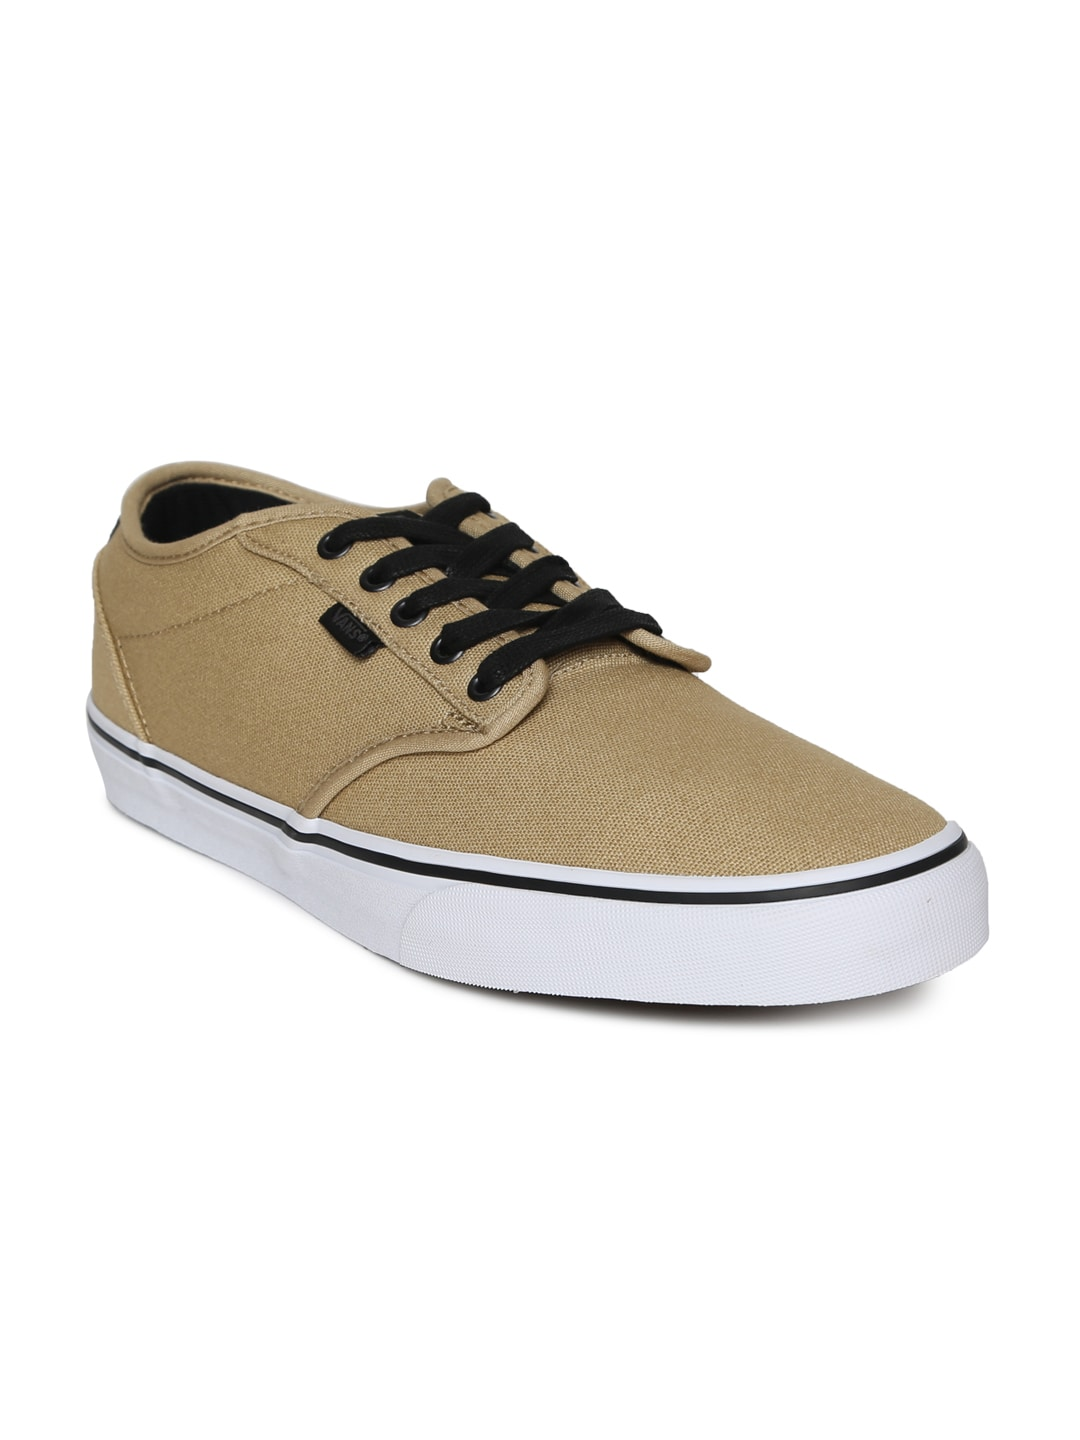 9bfea56e704b Vans Casual Shoes - Buy Vans Casual Shoes Online in India